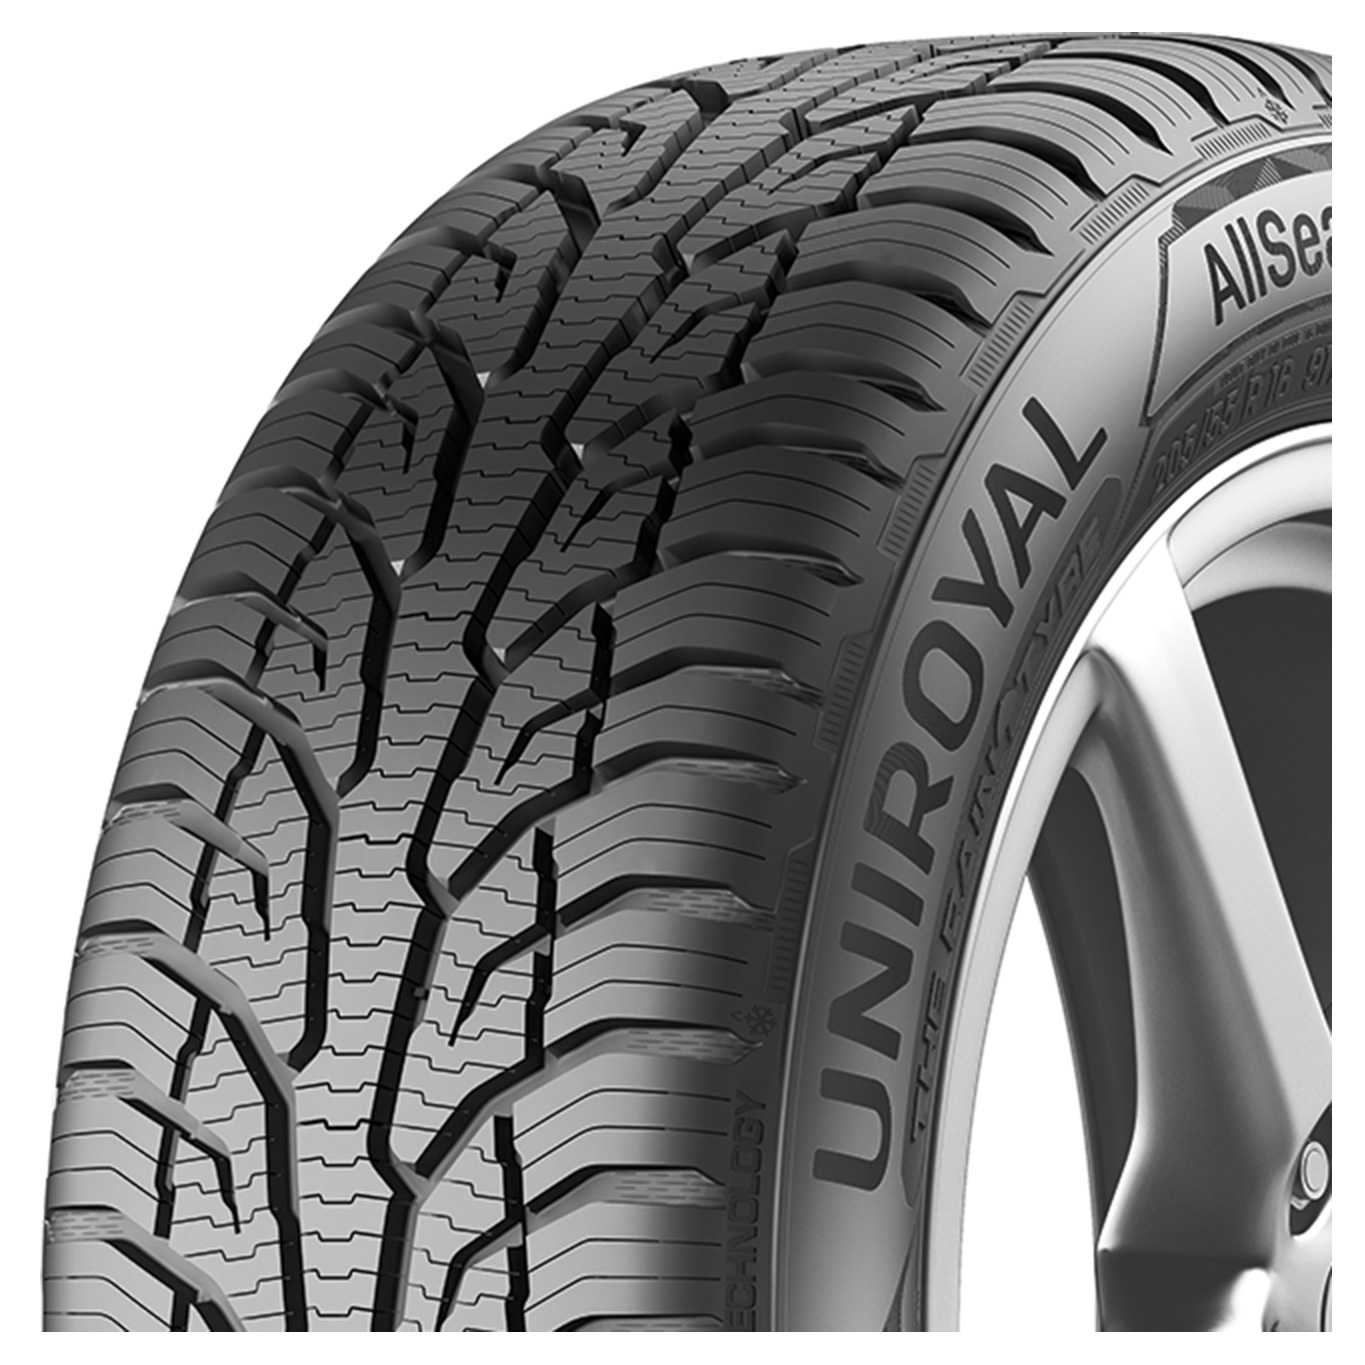 Gomme Nuove Uniroyal 215/55 R17 98W ALL SEASON EXPERT2 XL M+S pneumatici nuovi All Season